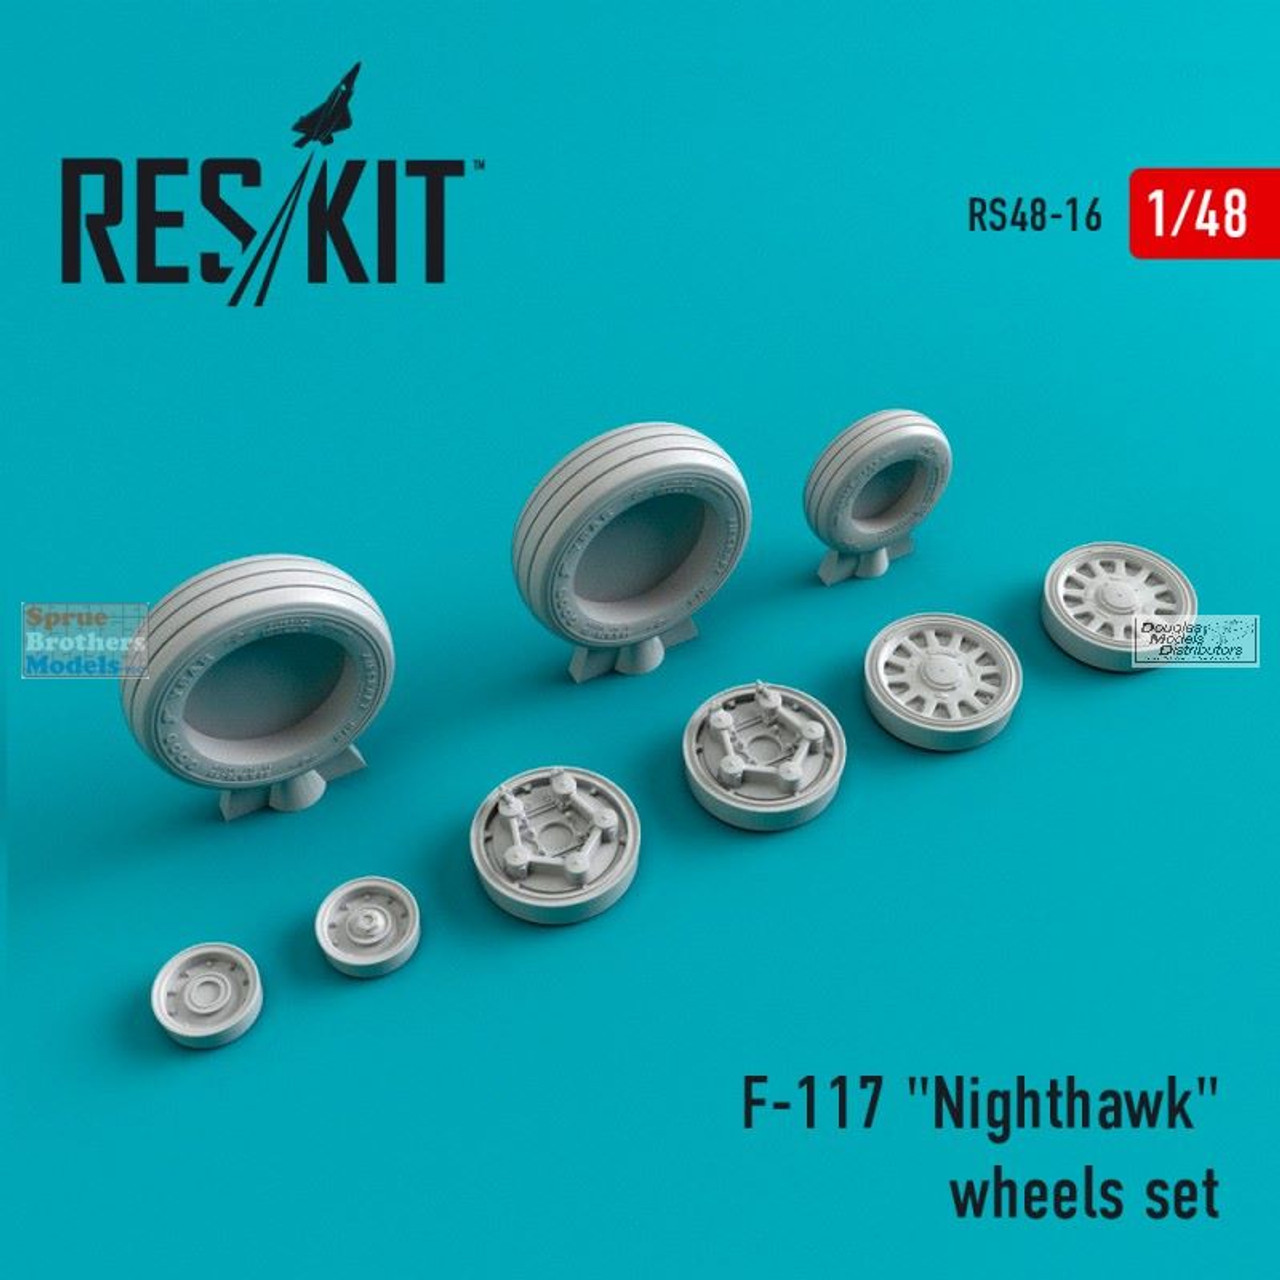 RESRS480016 1:48 ResKit Lockheed F-117 Nighthawk Wheels Set